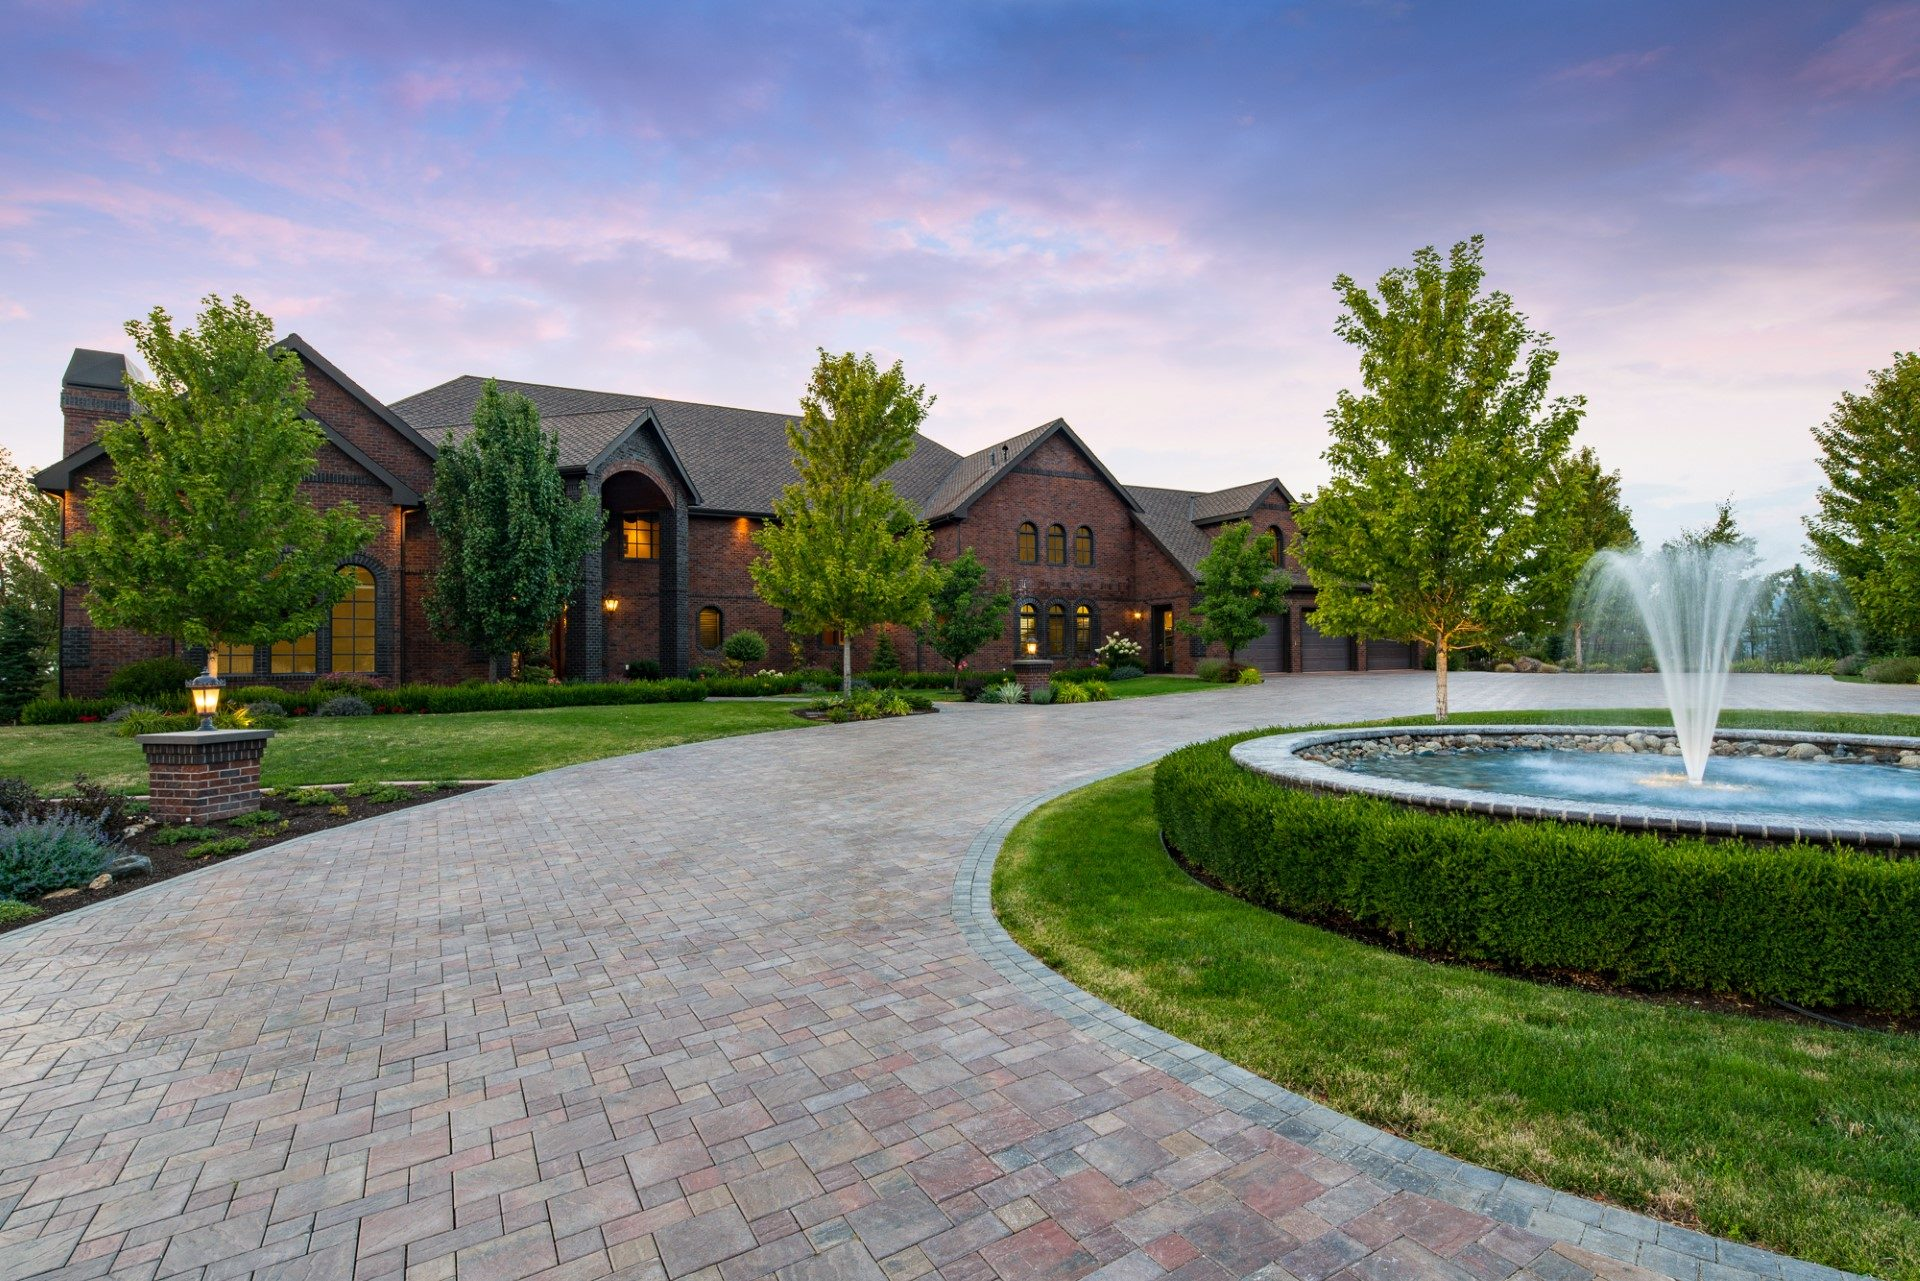 Luxury Mansion Architecture Real Estate Marketing and Photography